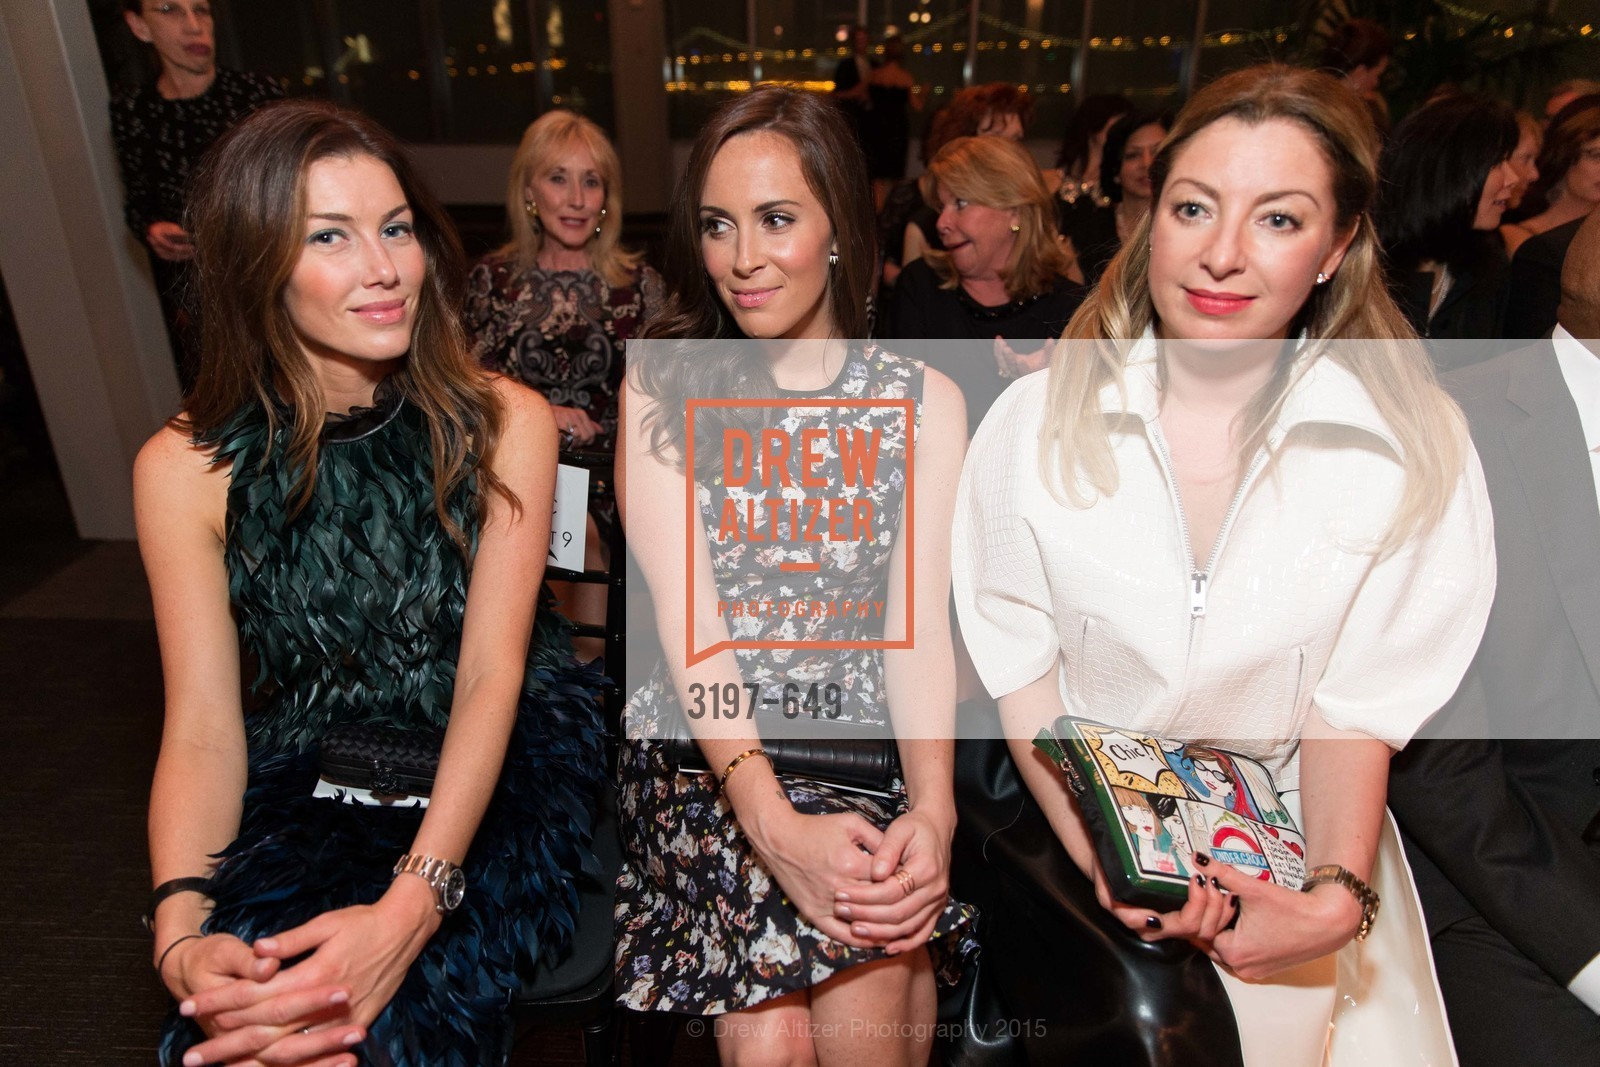 Sarah Somberg, Cierra Sherwin, Sonya Molodetskaya, Fashion Forward: An Evening with Erdem presented by SF Opera Guild and Saks Fifth Avenue, Pier 27. Pier 27, The Embarcadero, March 25th, 2015,Drew Altizer, Drew Altizer Photography, full-service agency, private events, San Francisco photographer, photographer california